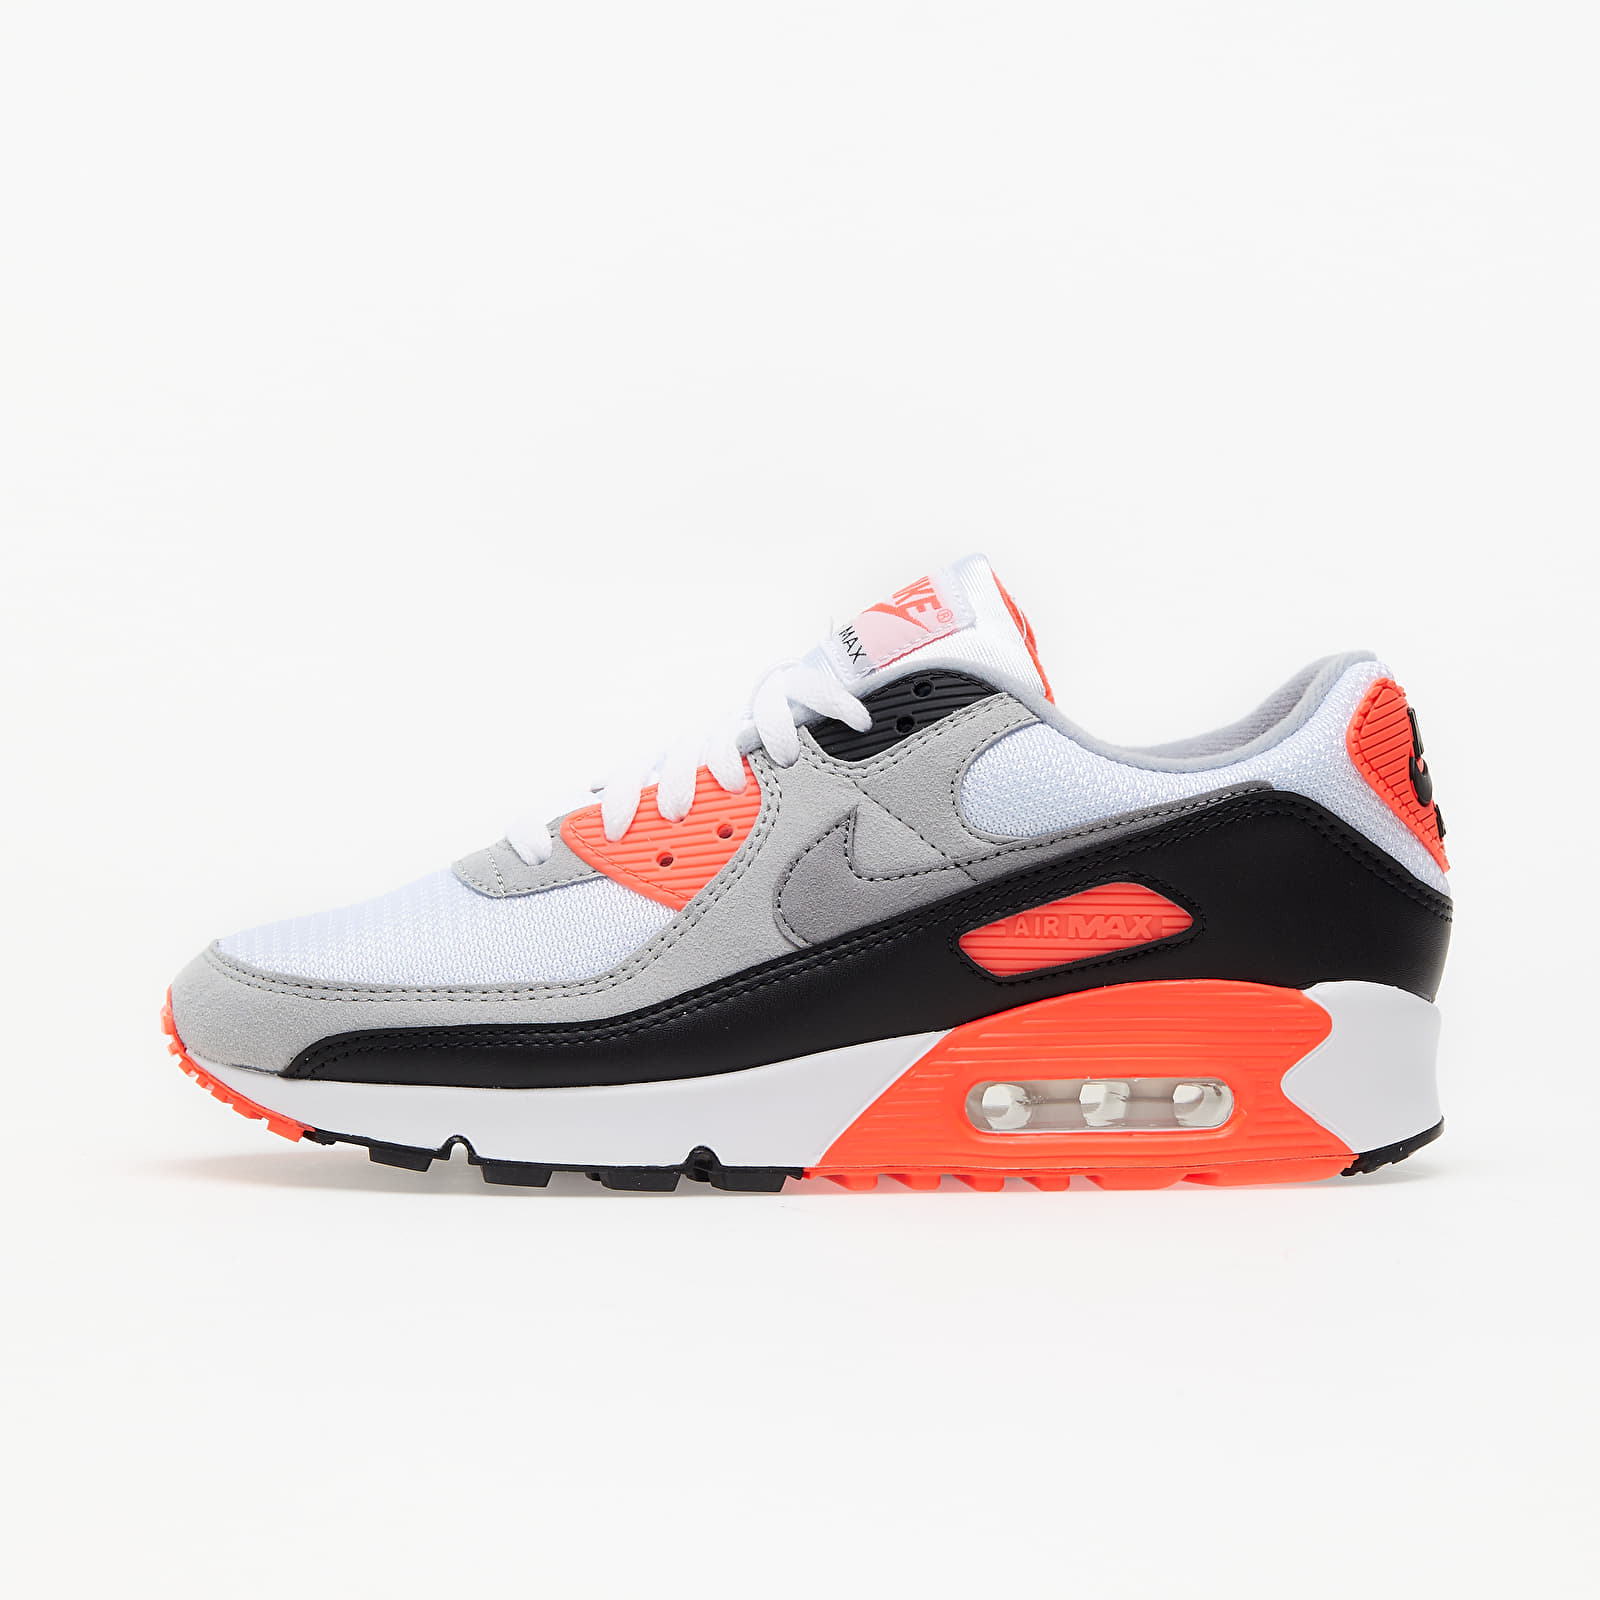 Nike Air Max III White/ Black-Cool Grey-Radiant Red EUR 42